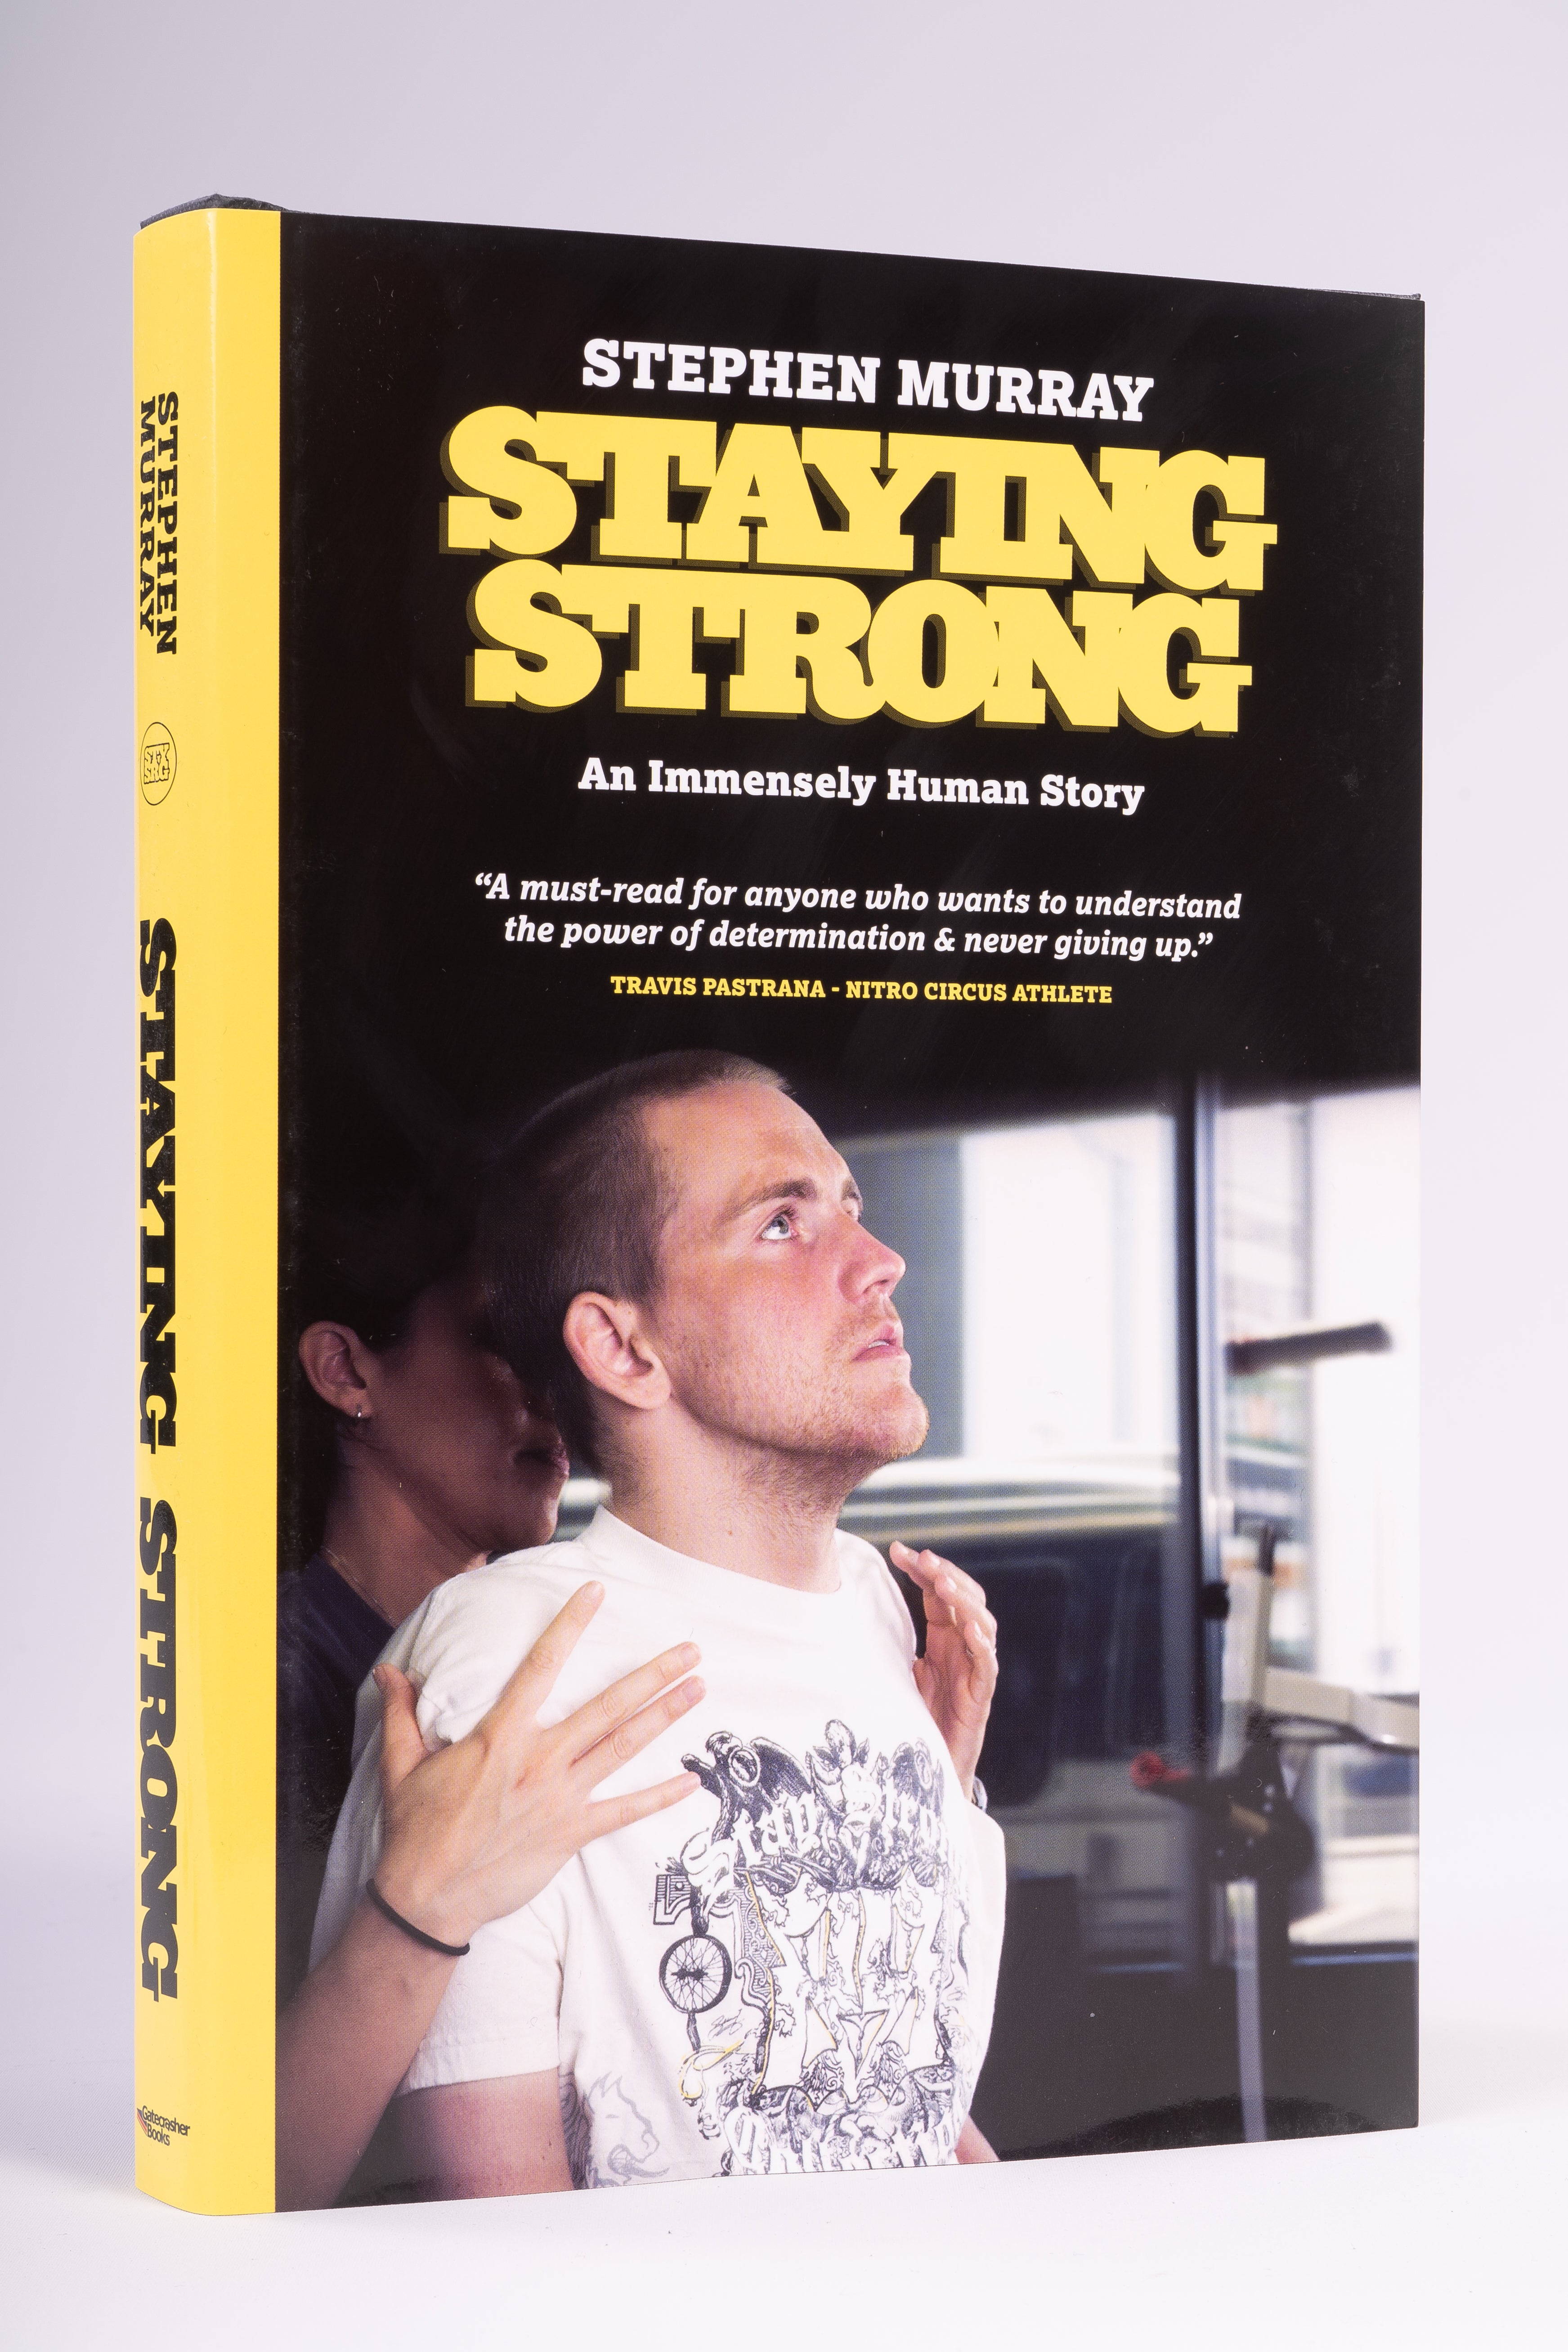 STEPHEN MURRAY - 'STAYING STRONG' AUTOBIOGRAPHY